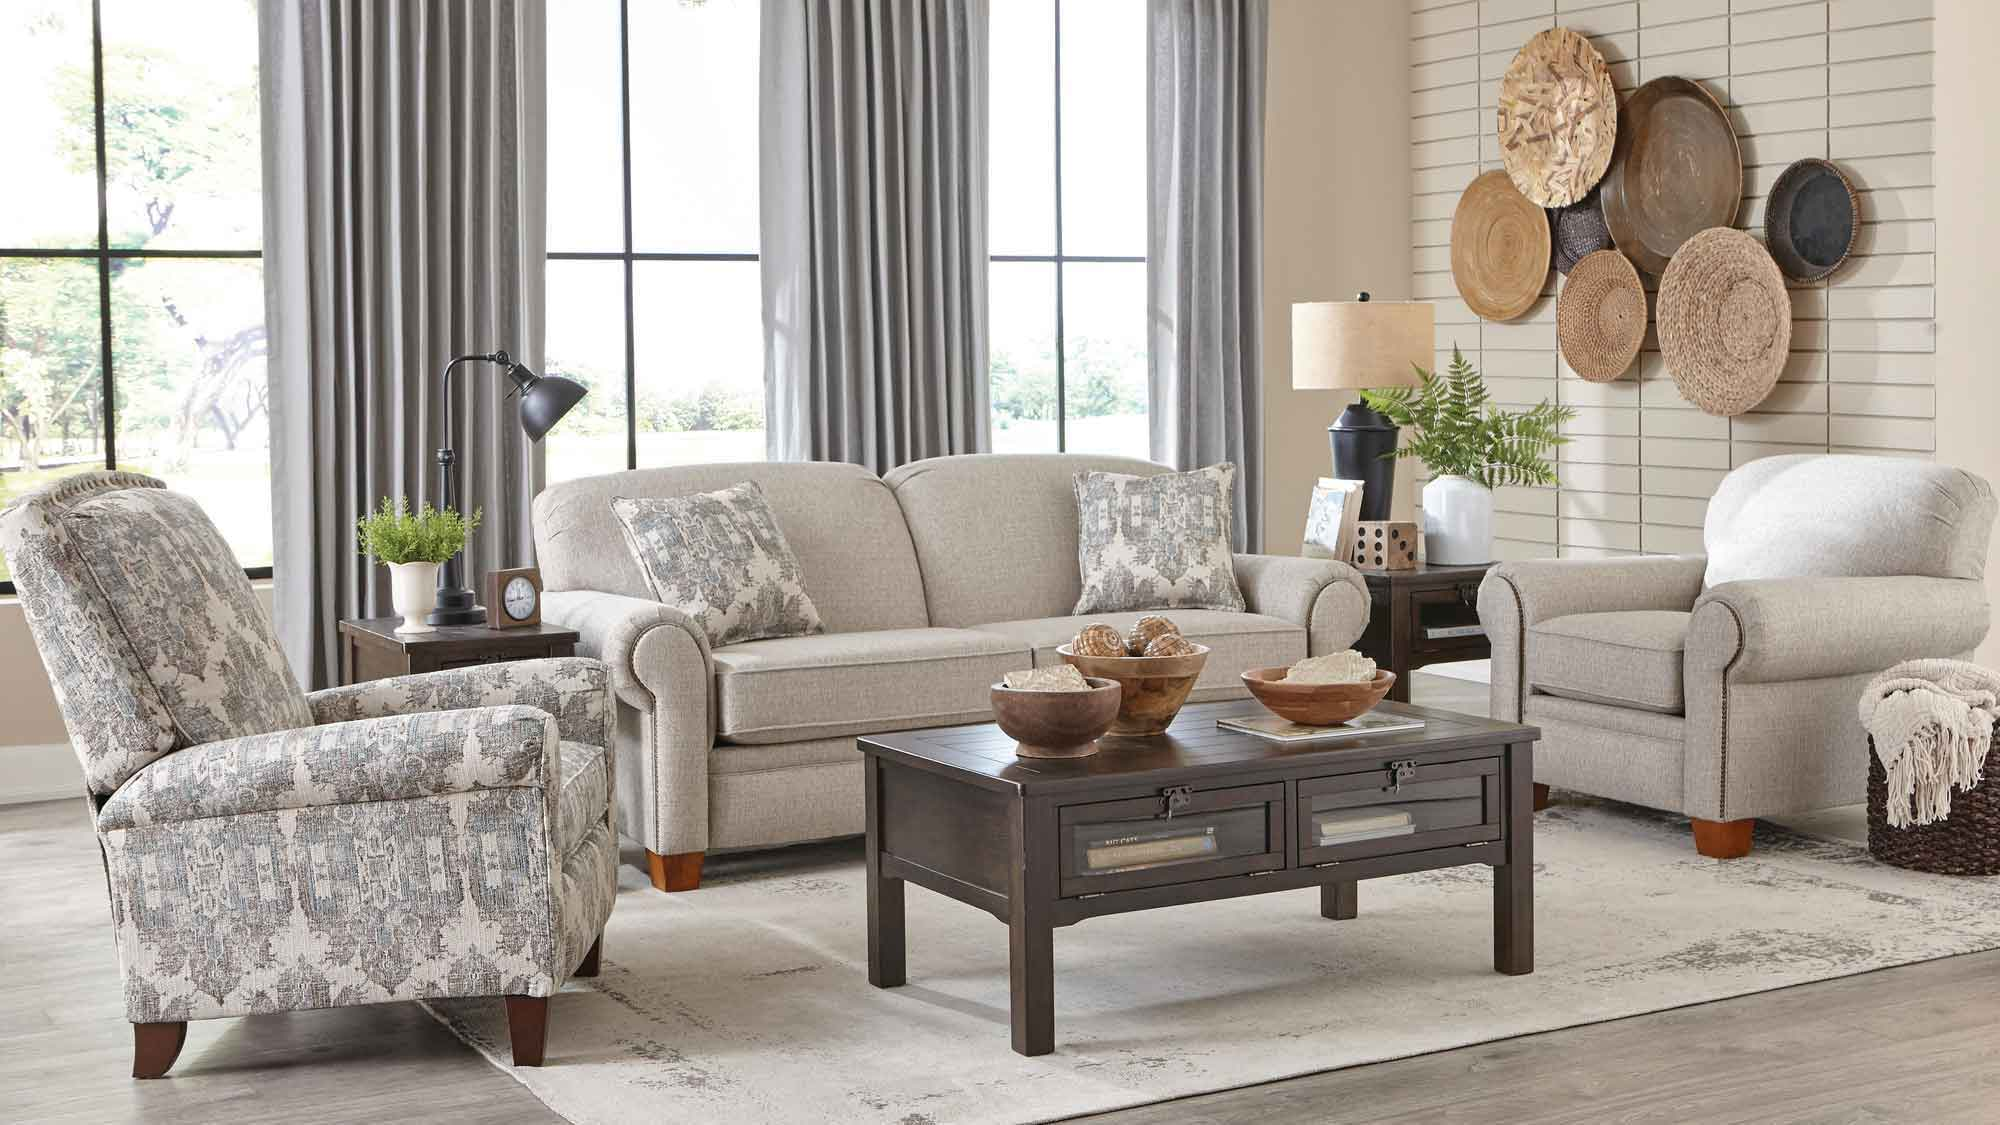 6 Steps to Designing a Custom Sofa for Your New Home